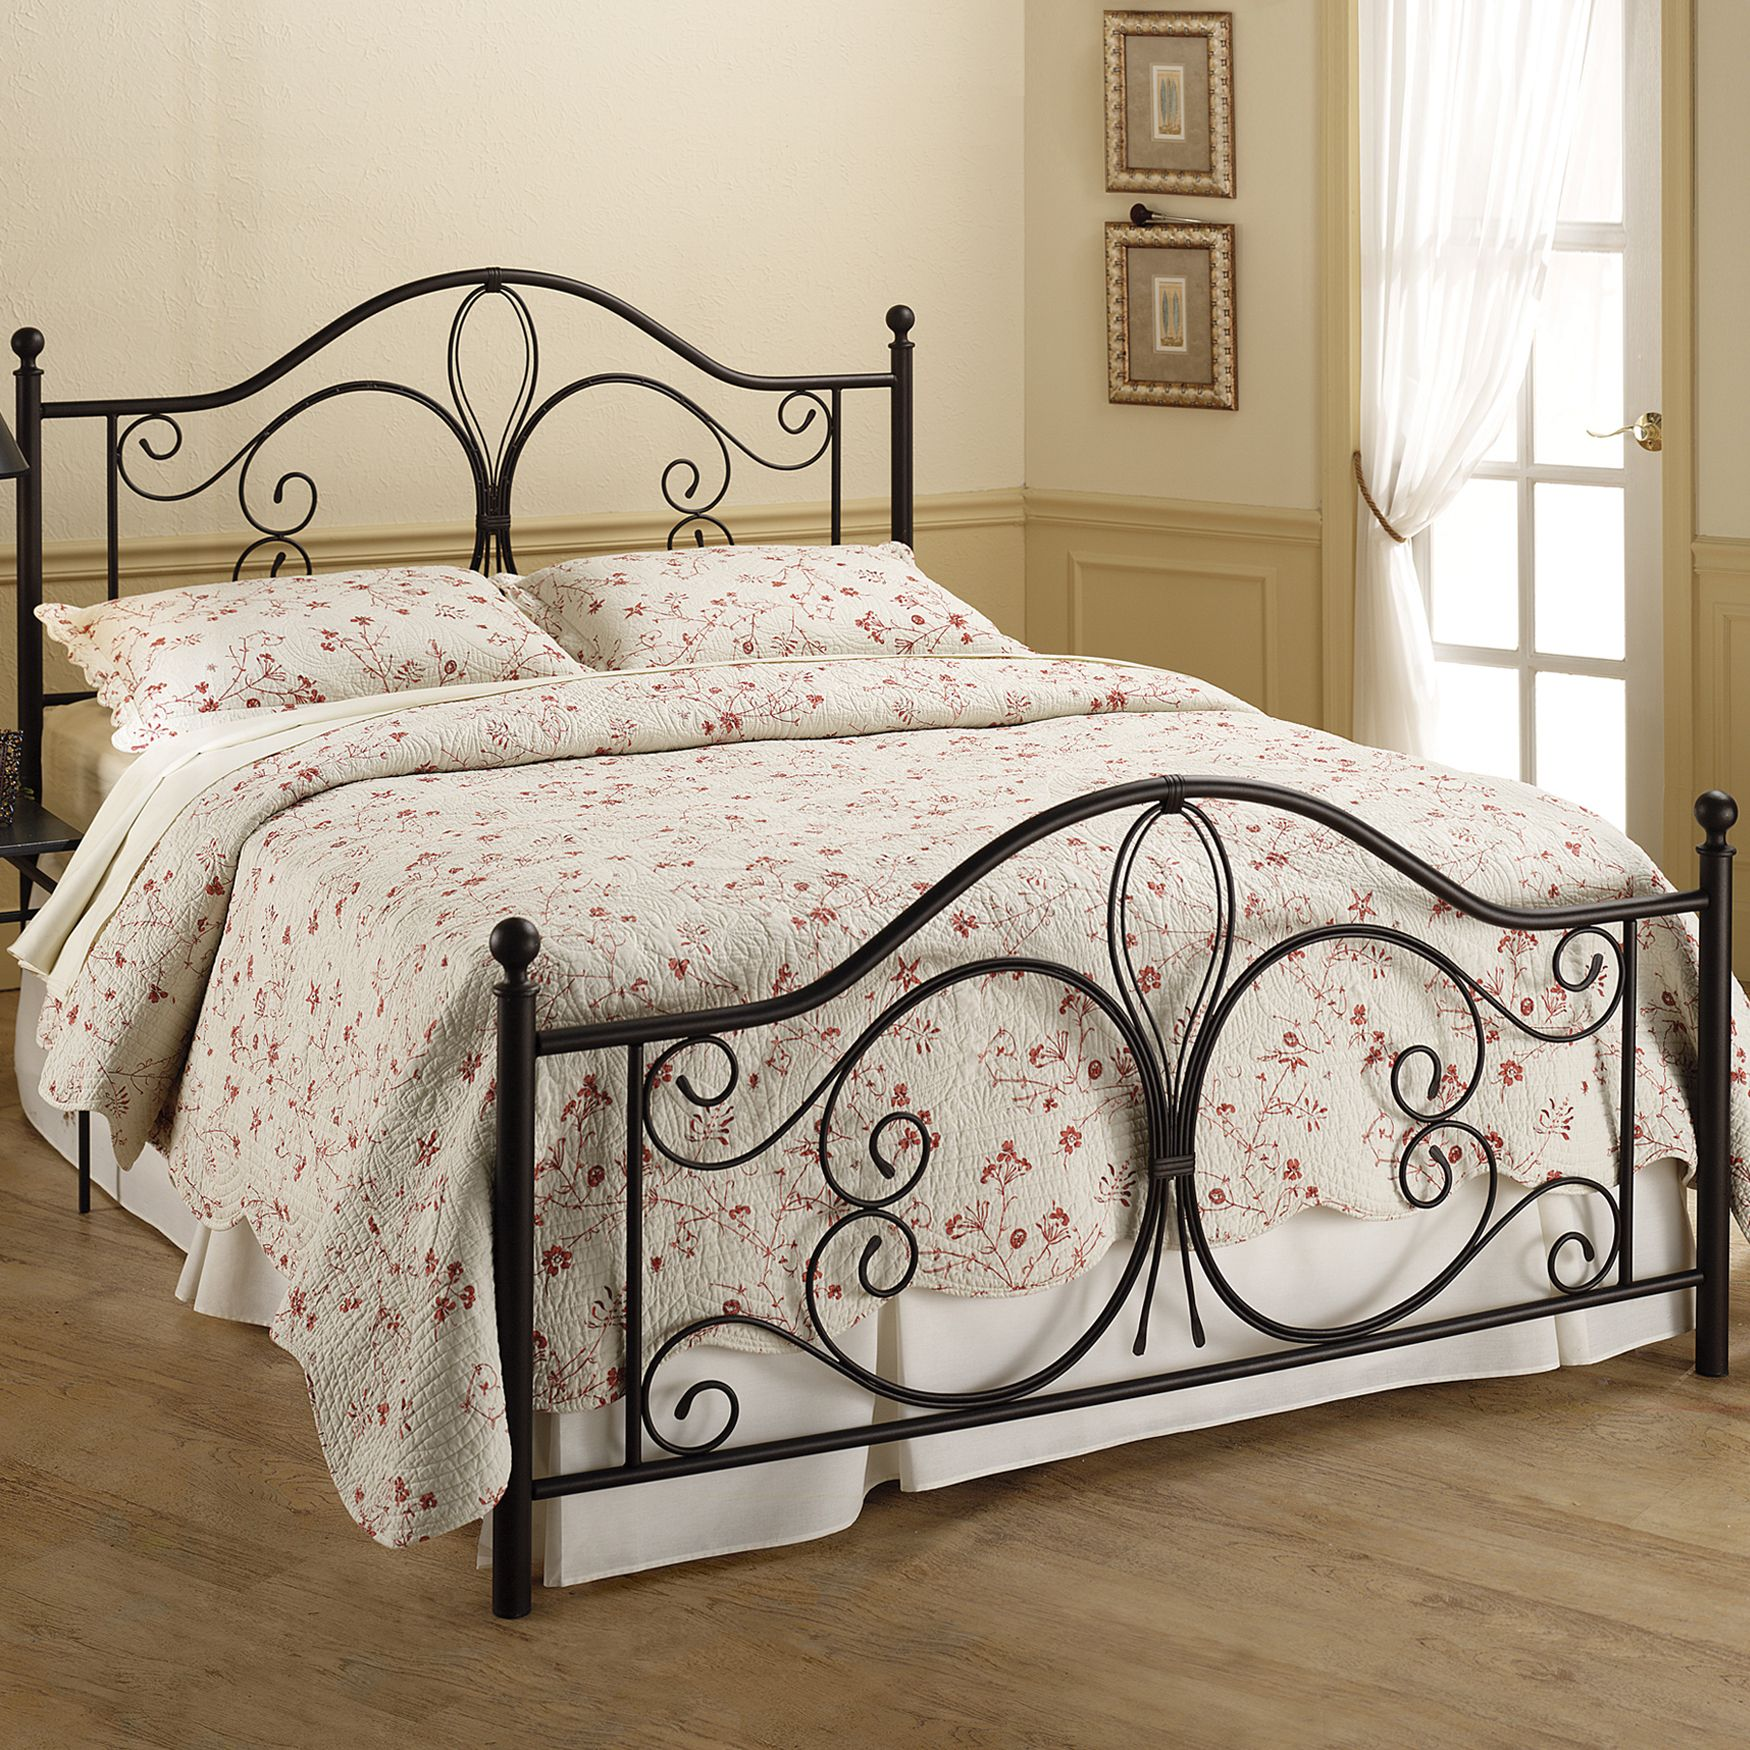 Twin Bed Set with Bed Frame, 76'Lx40½'Wx49½'H, ANTIQUE BROWN